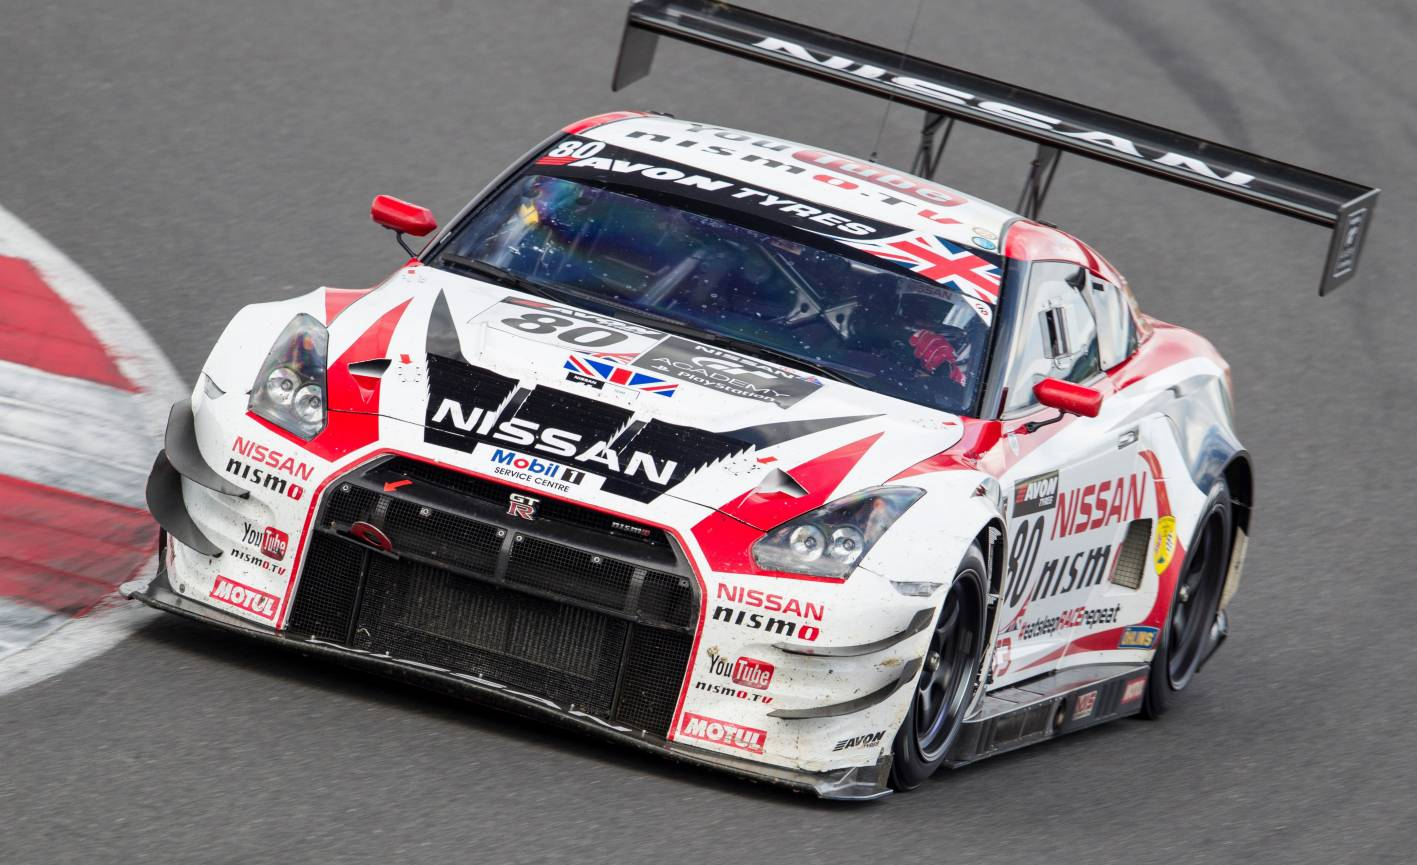 Wallpaper Mobil Sport Hd Nissan Gt R Nismo Gt3 Takes On The Nurburgring 24 Hours